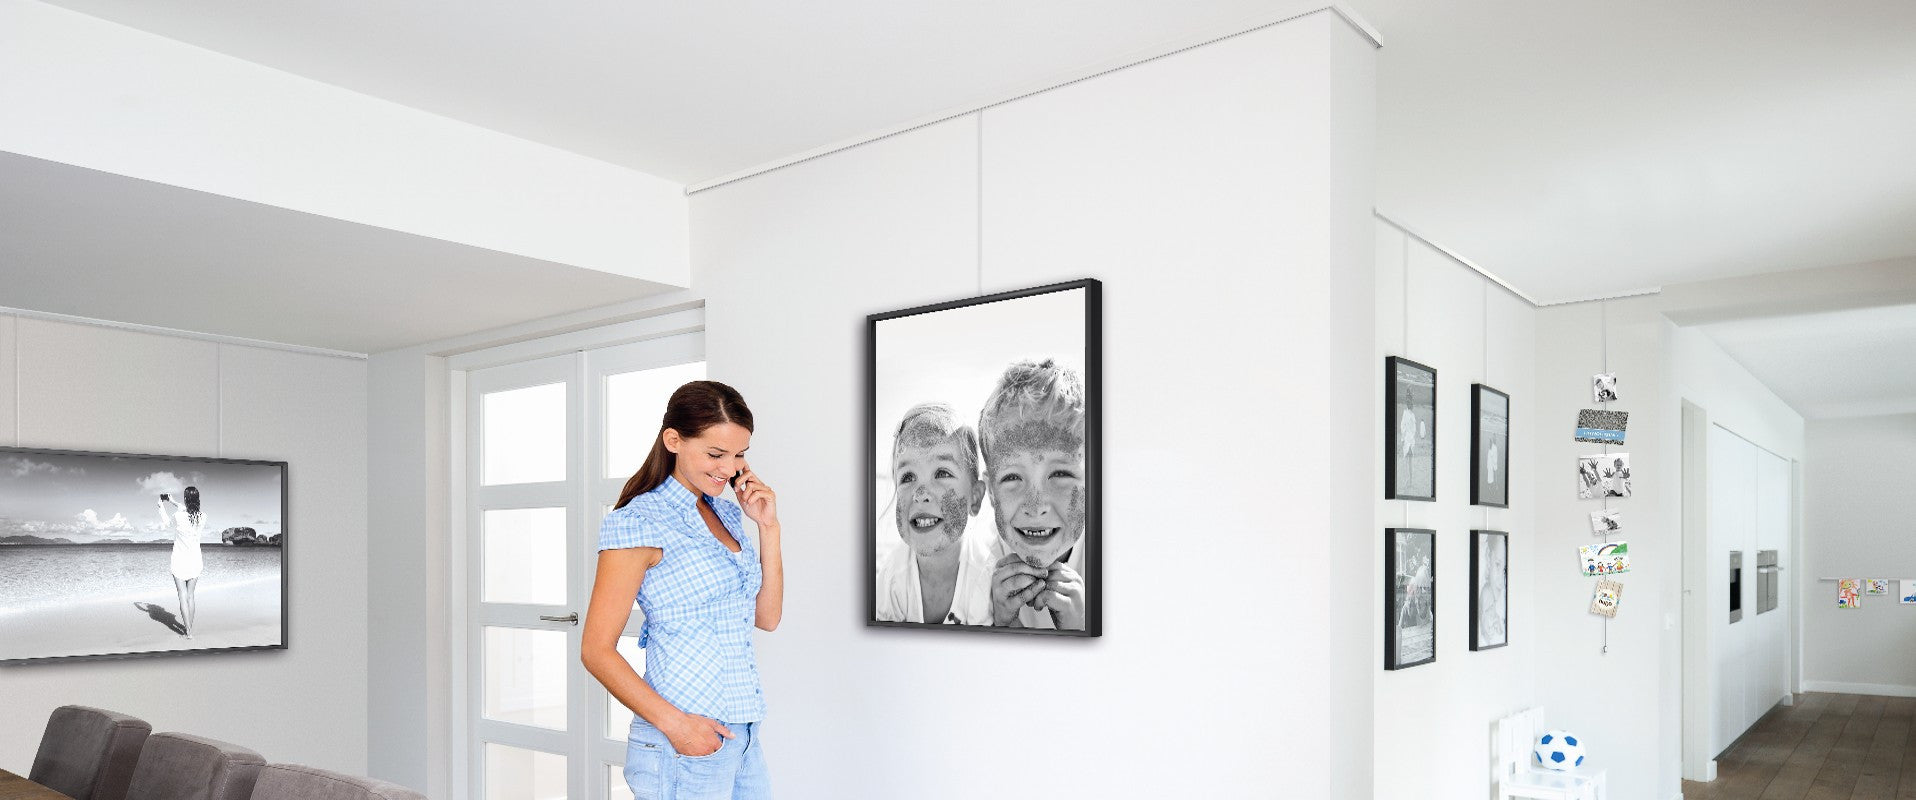 Gallery System Professional Hanging Art Living